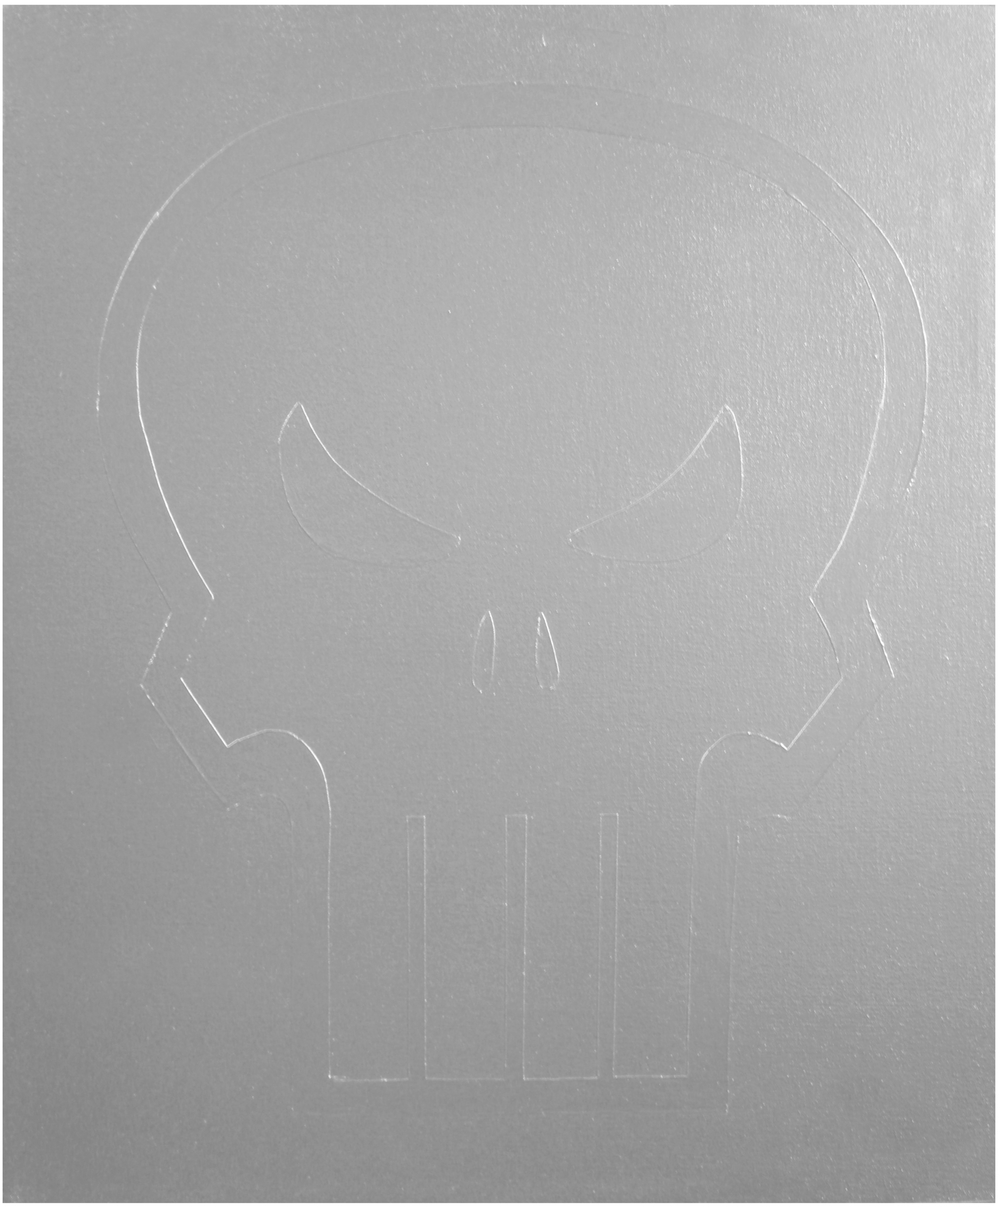 Punisher  Industrial Paint on Canvas - 24 x 20in - 2011